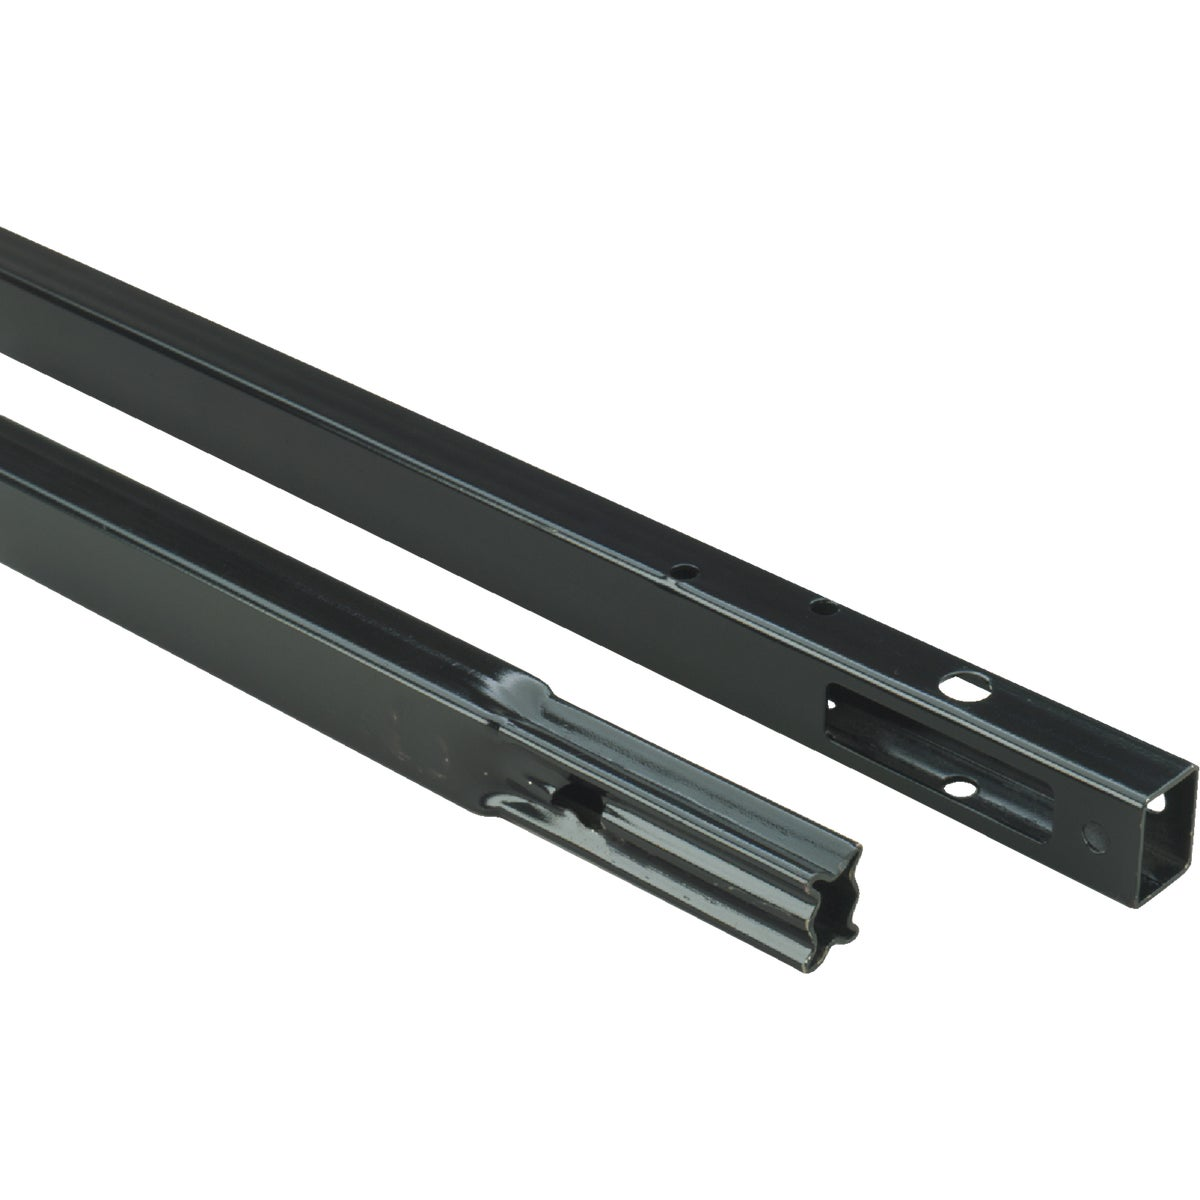 10' RAIL EXTENSION KIT - 7710CB by Chamberlain